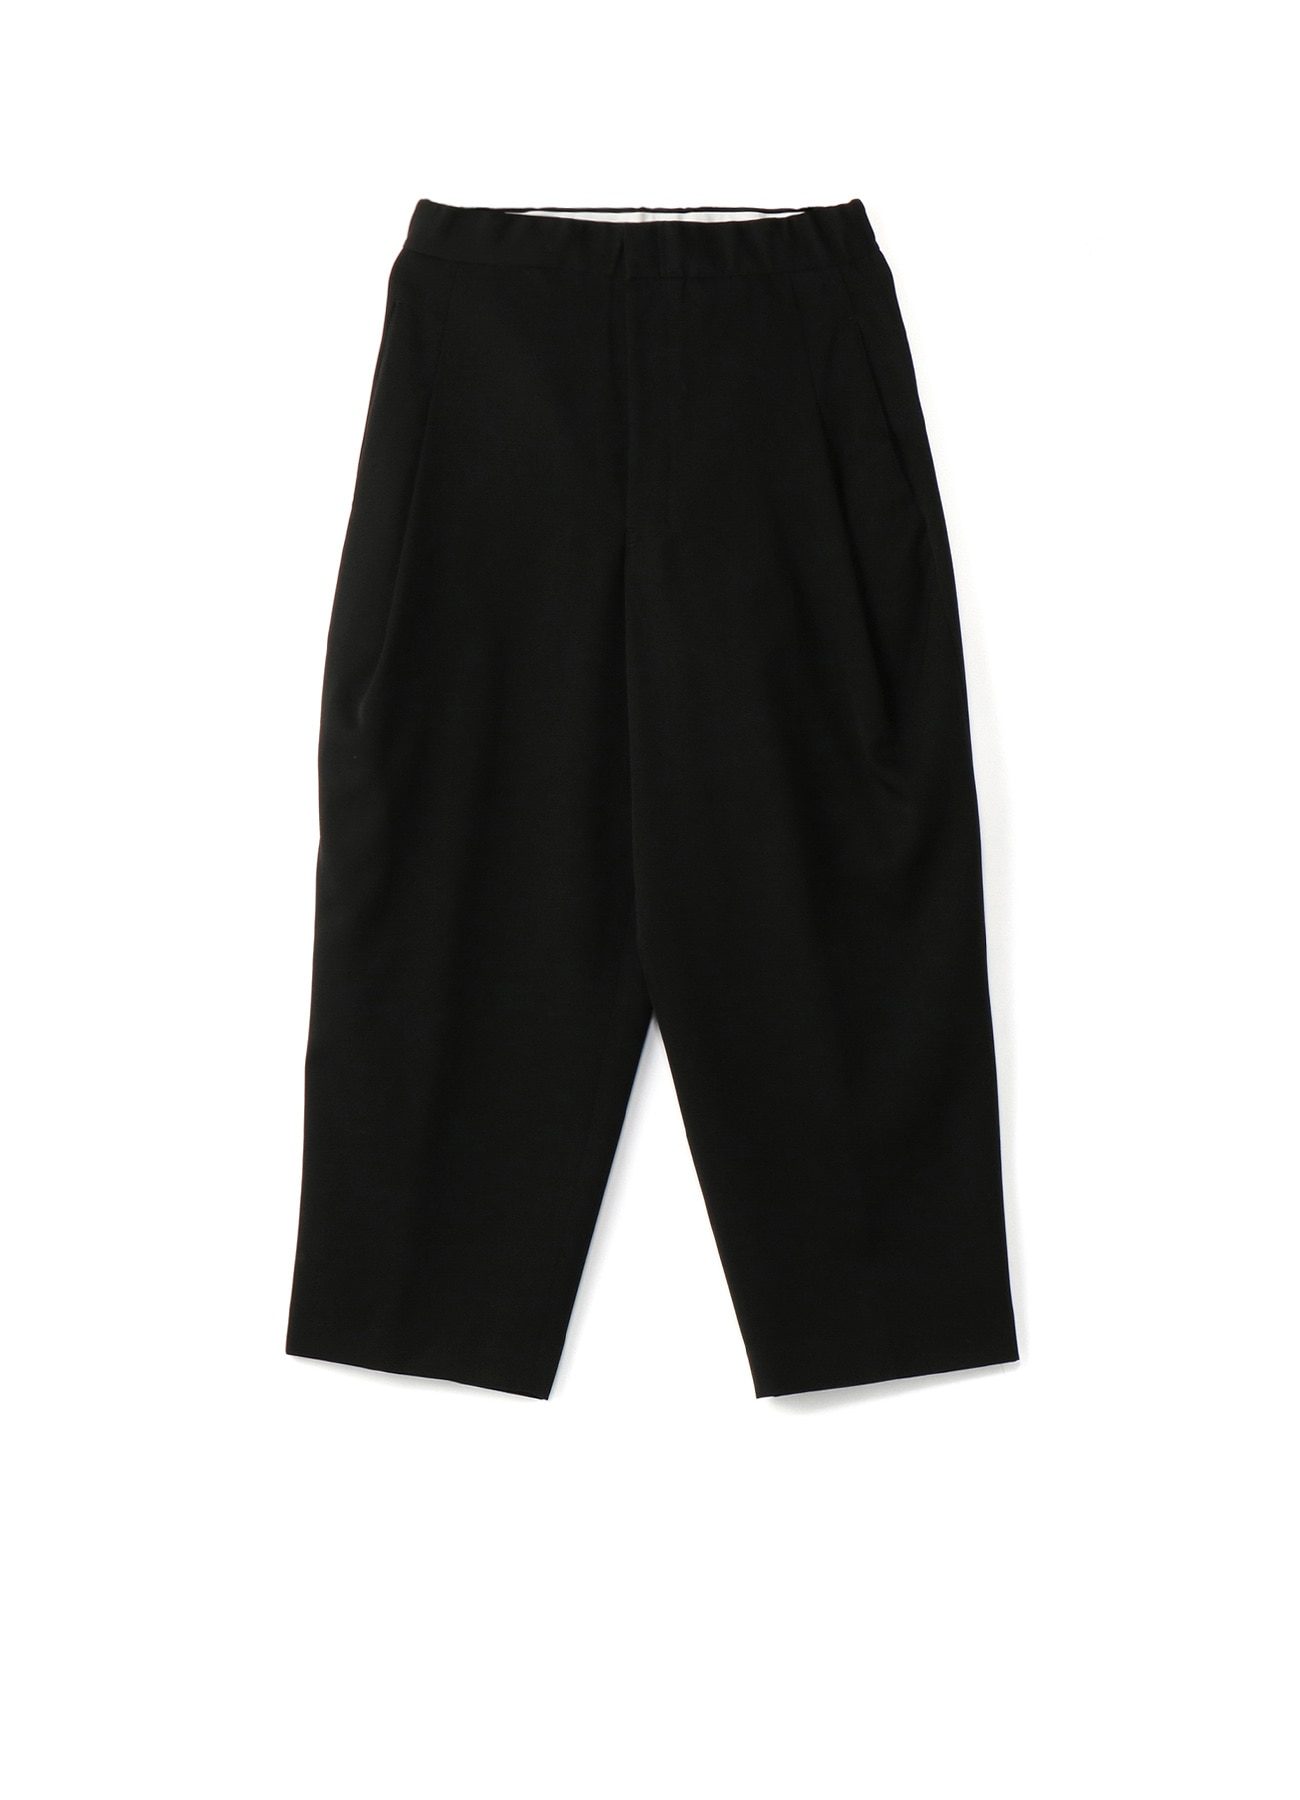 TAXEDO CROSS TUCK PANTS